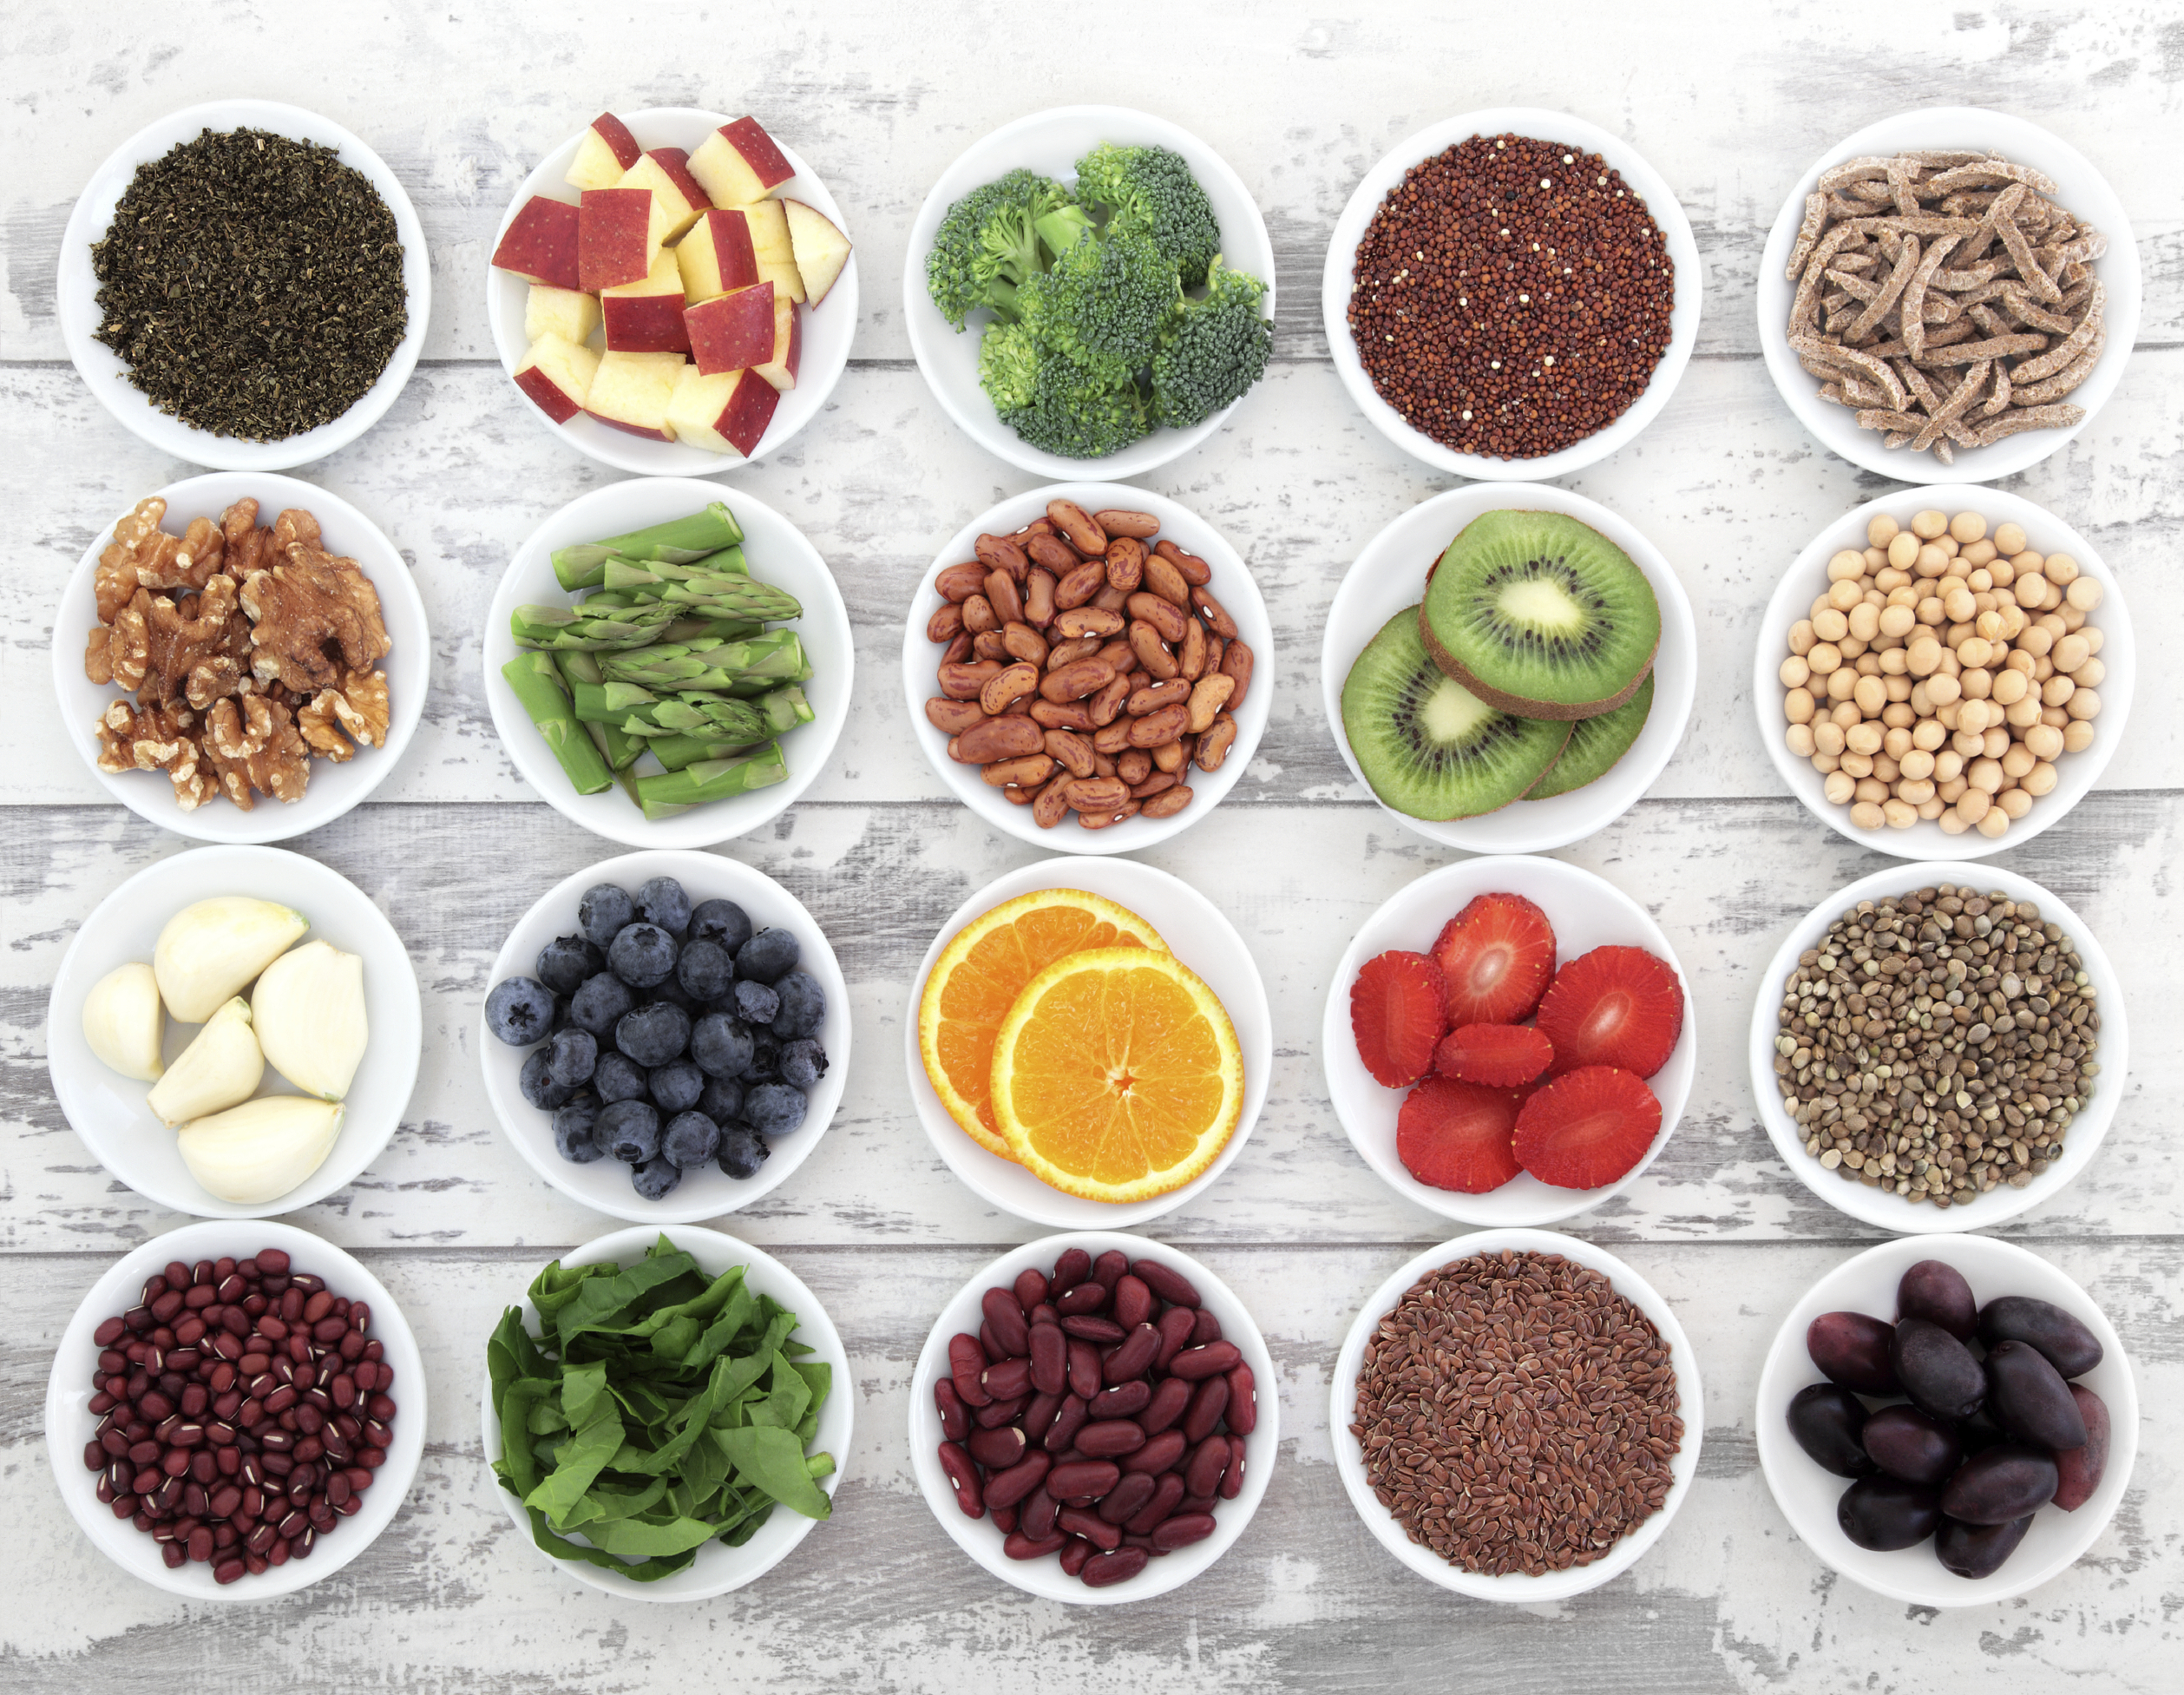 Foods To Eat While Fighting Cancer